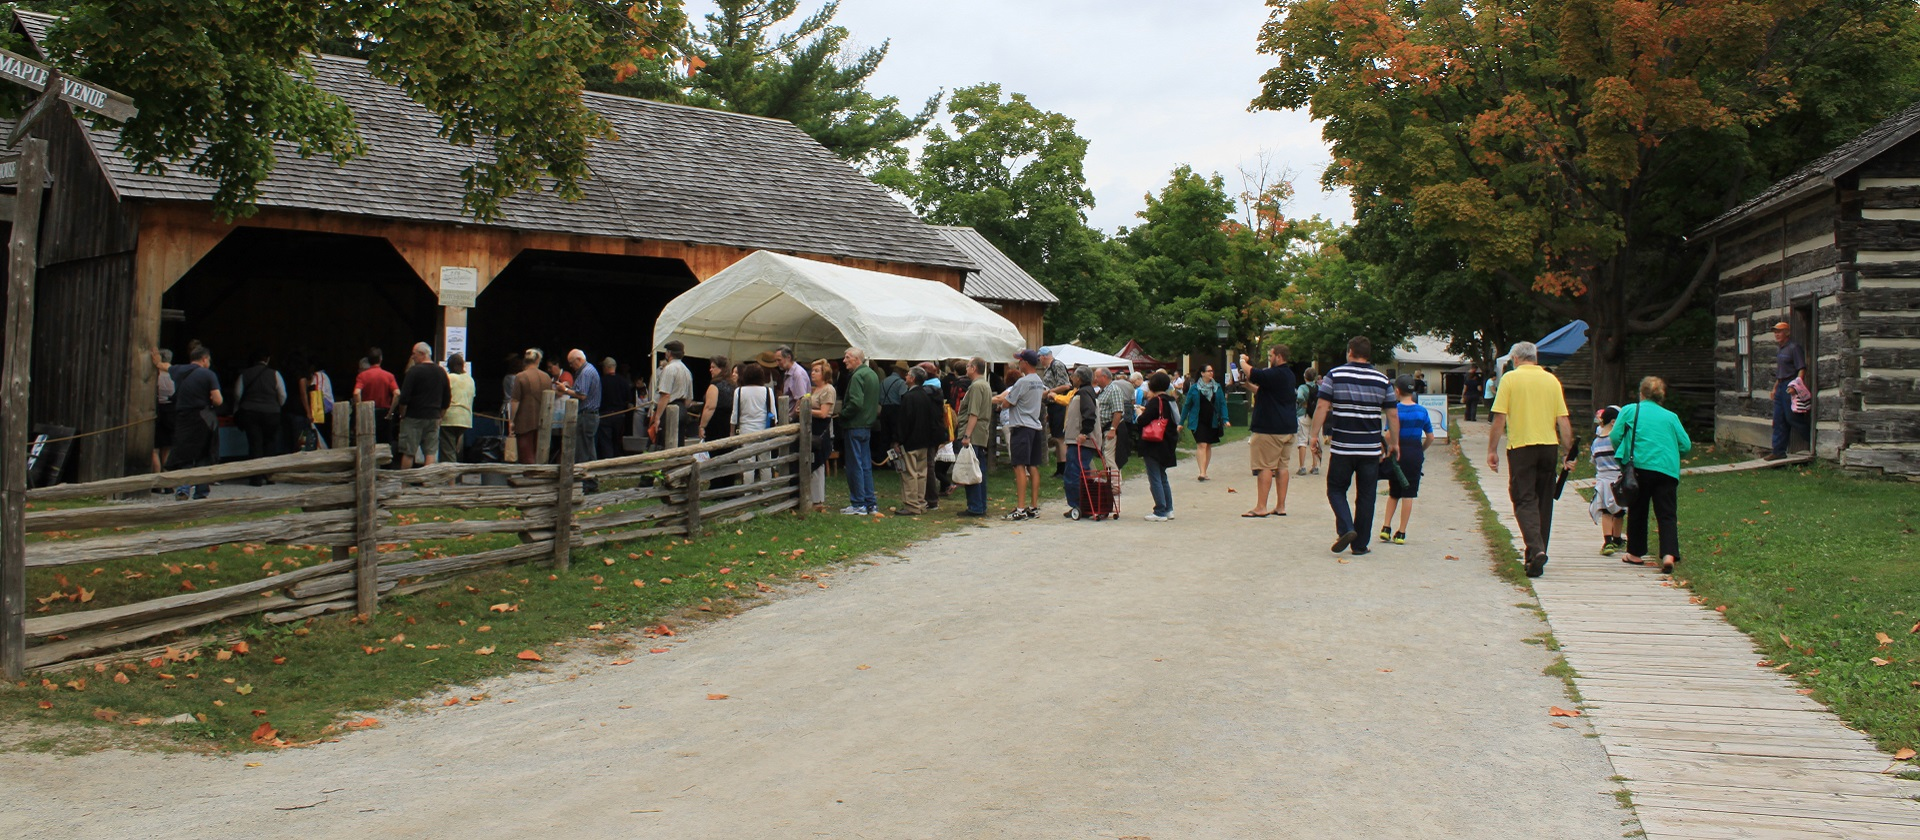 Artisan Village Festival @ Black Creek Pioneer Village